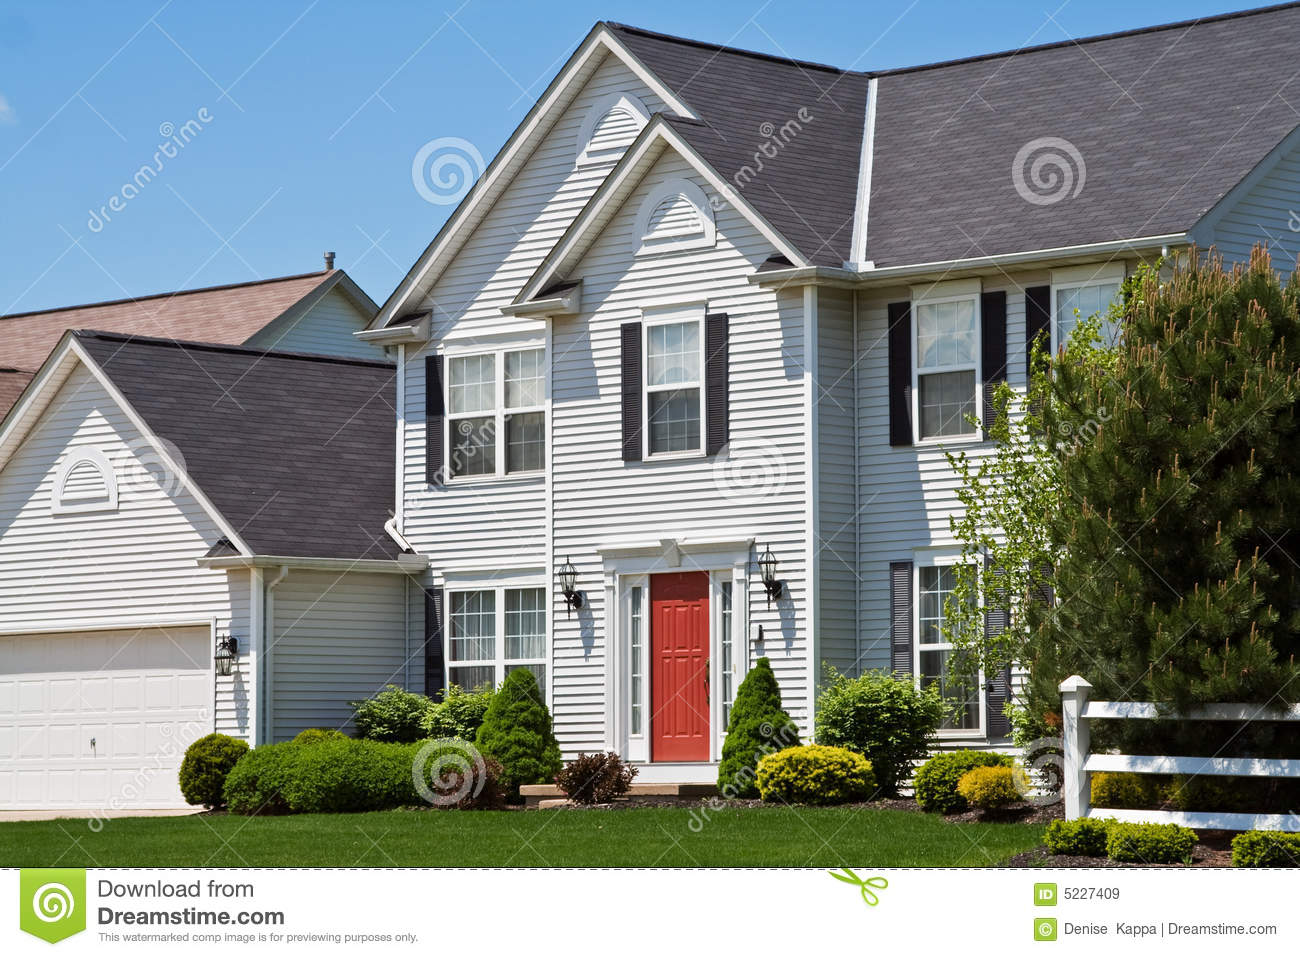 American Suburban House Stock Image Image Of Blue